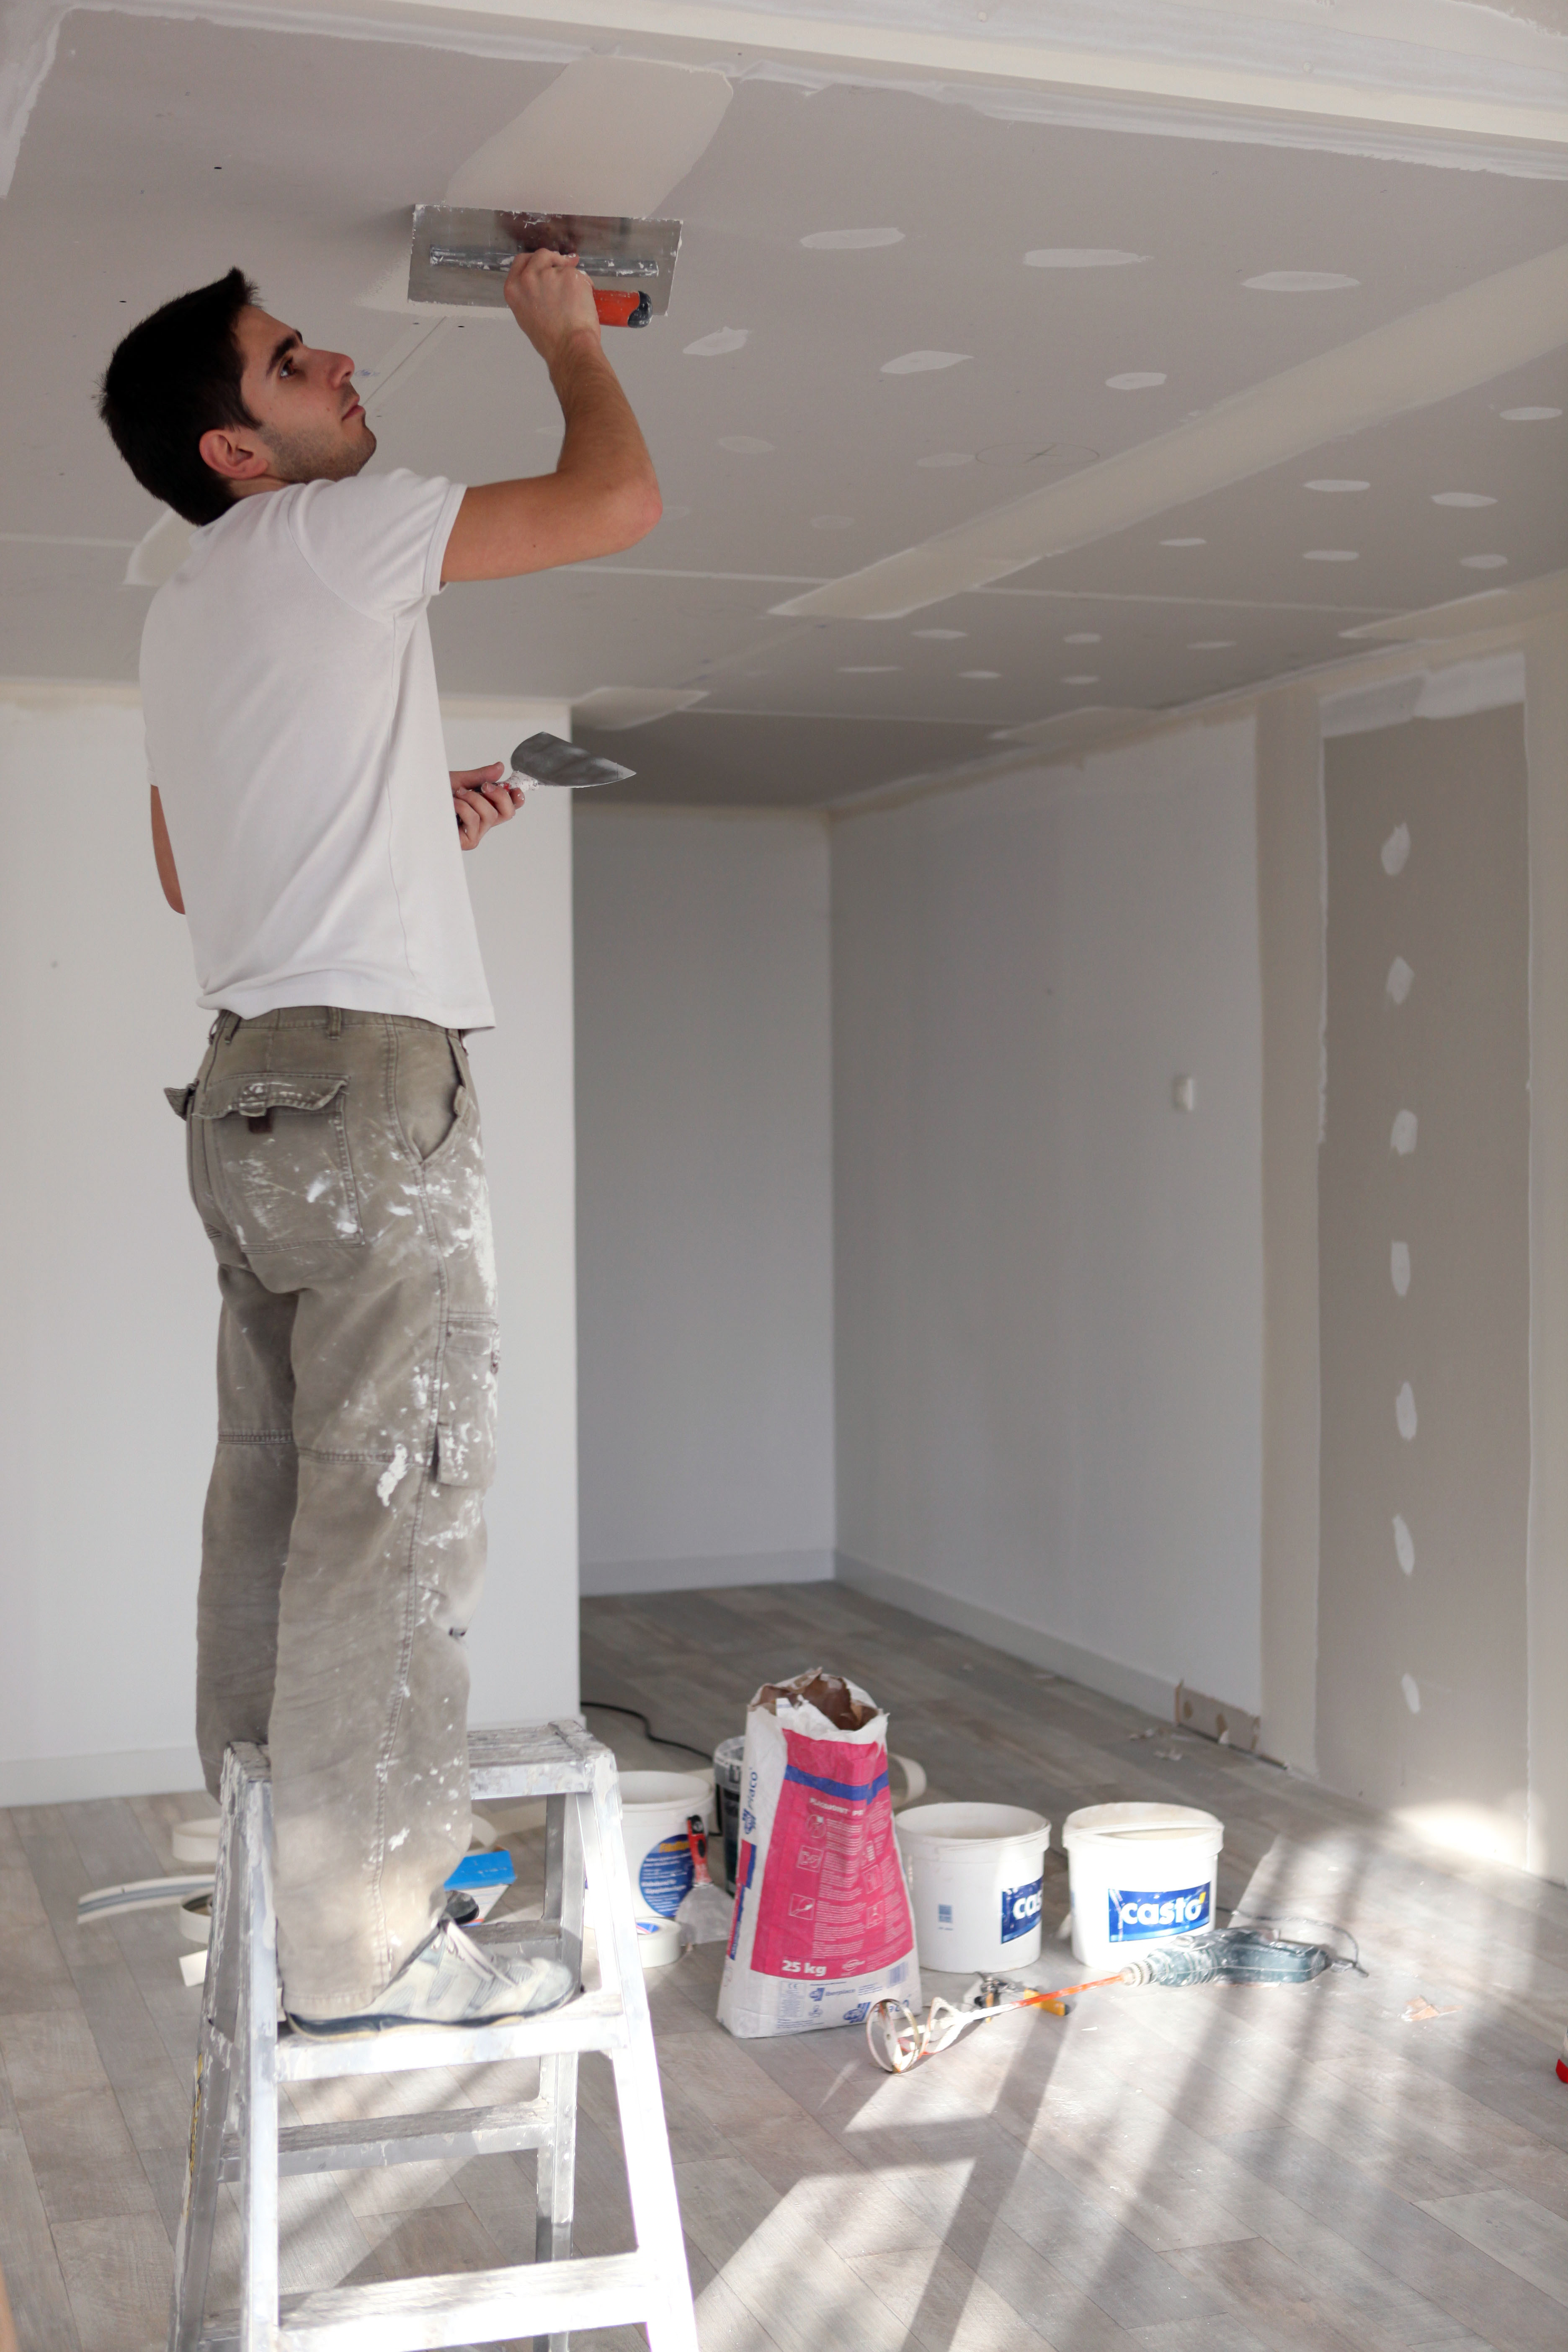 Tips for First-Time DIY Plastering